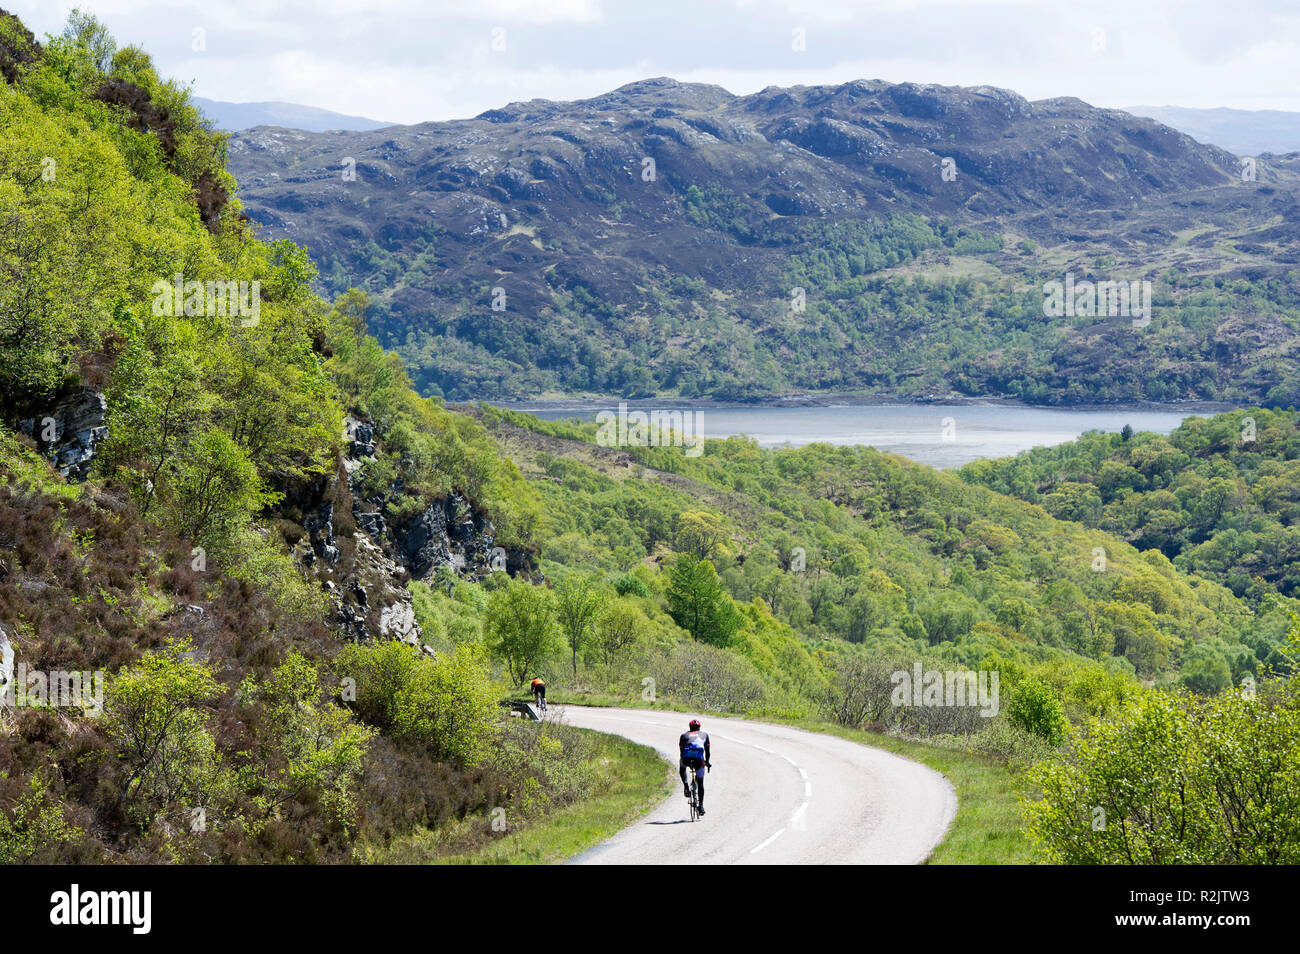 IR20150603. 03/06/15. Visit Scotland, Brilliant Moments. Niall Breslin, known as Bressie and Eoghan McDermot embark on a cycle trip around Scotland. O - Stock Image